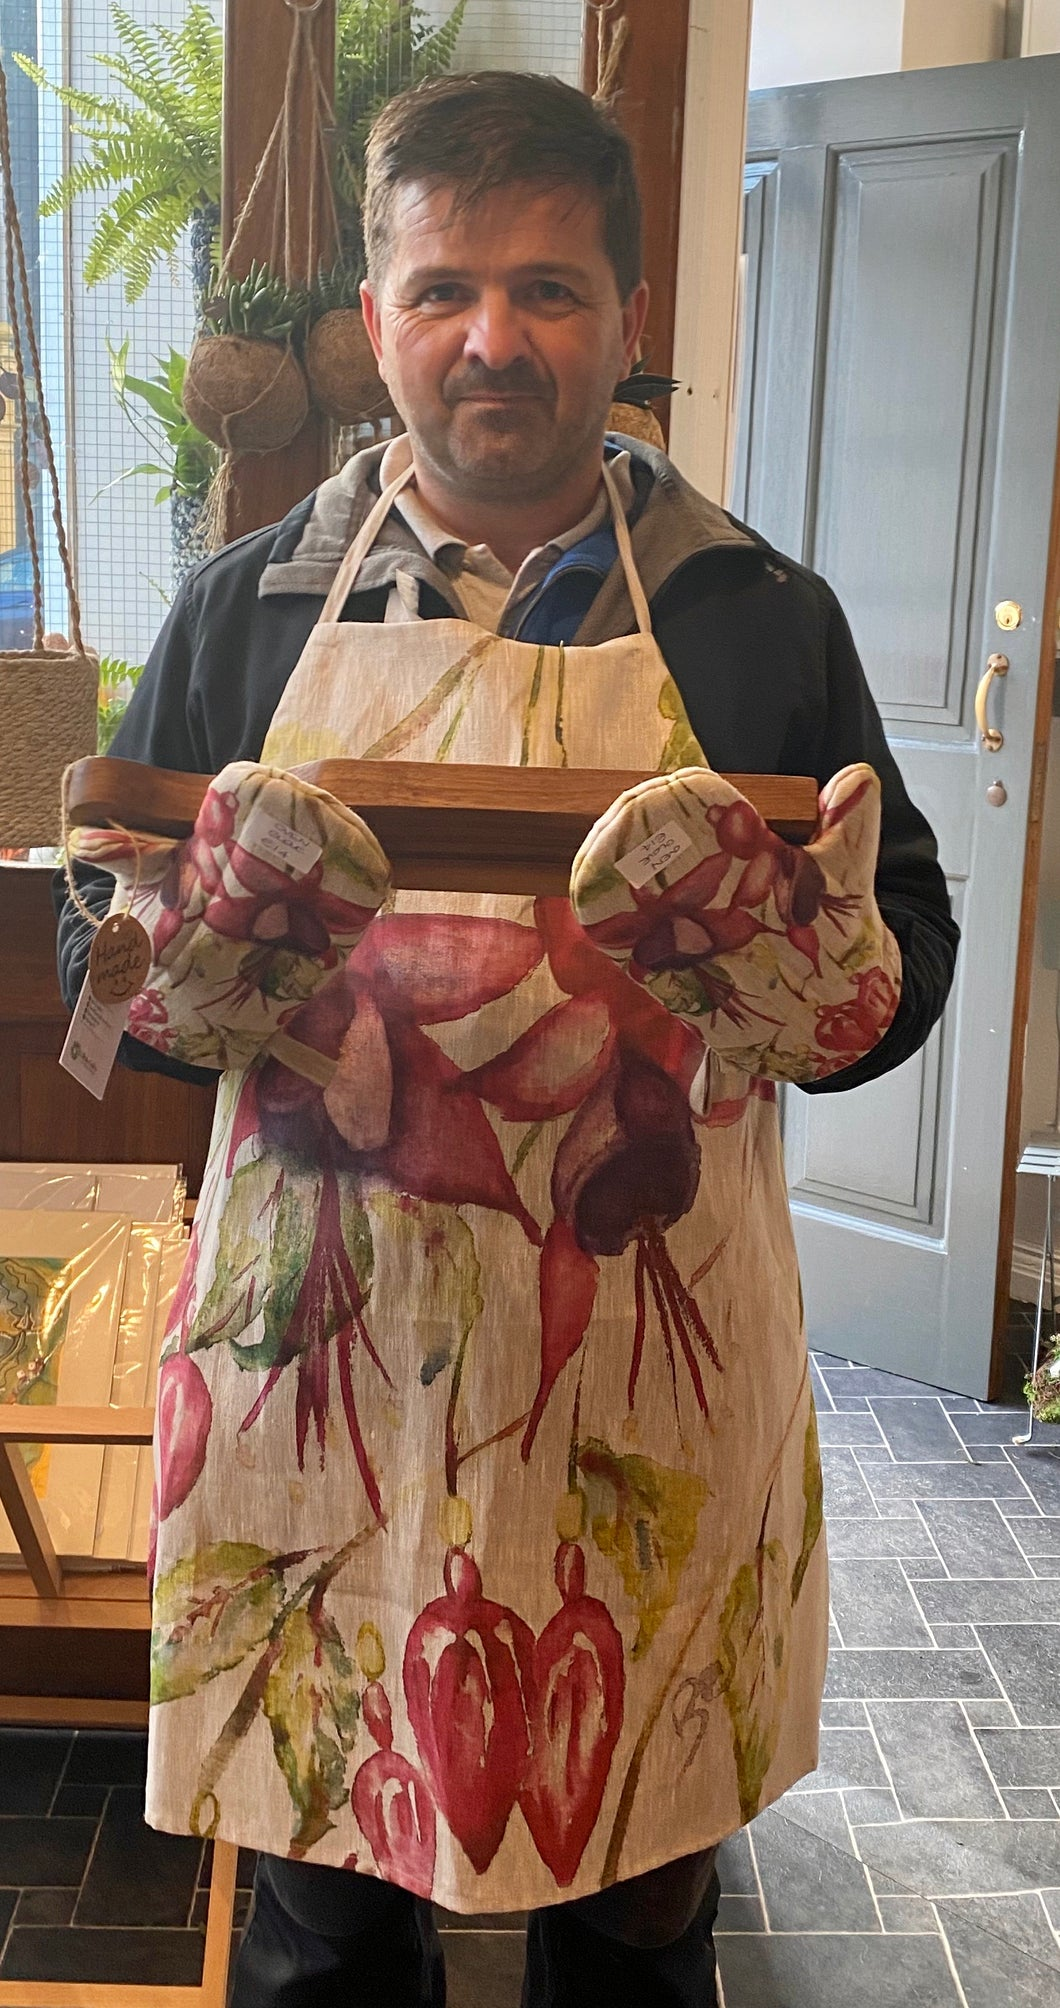 Fuchsia (Style 1) Hand Painted Apron and Oven Gloves - Strelitzia's Floristry & Irish Craft Shop